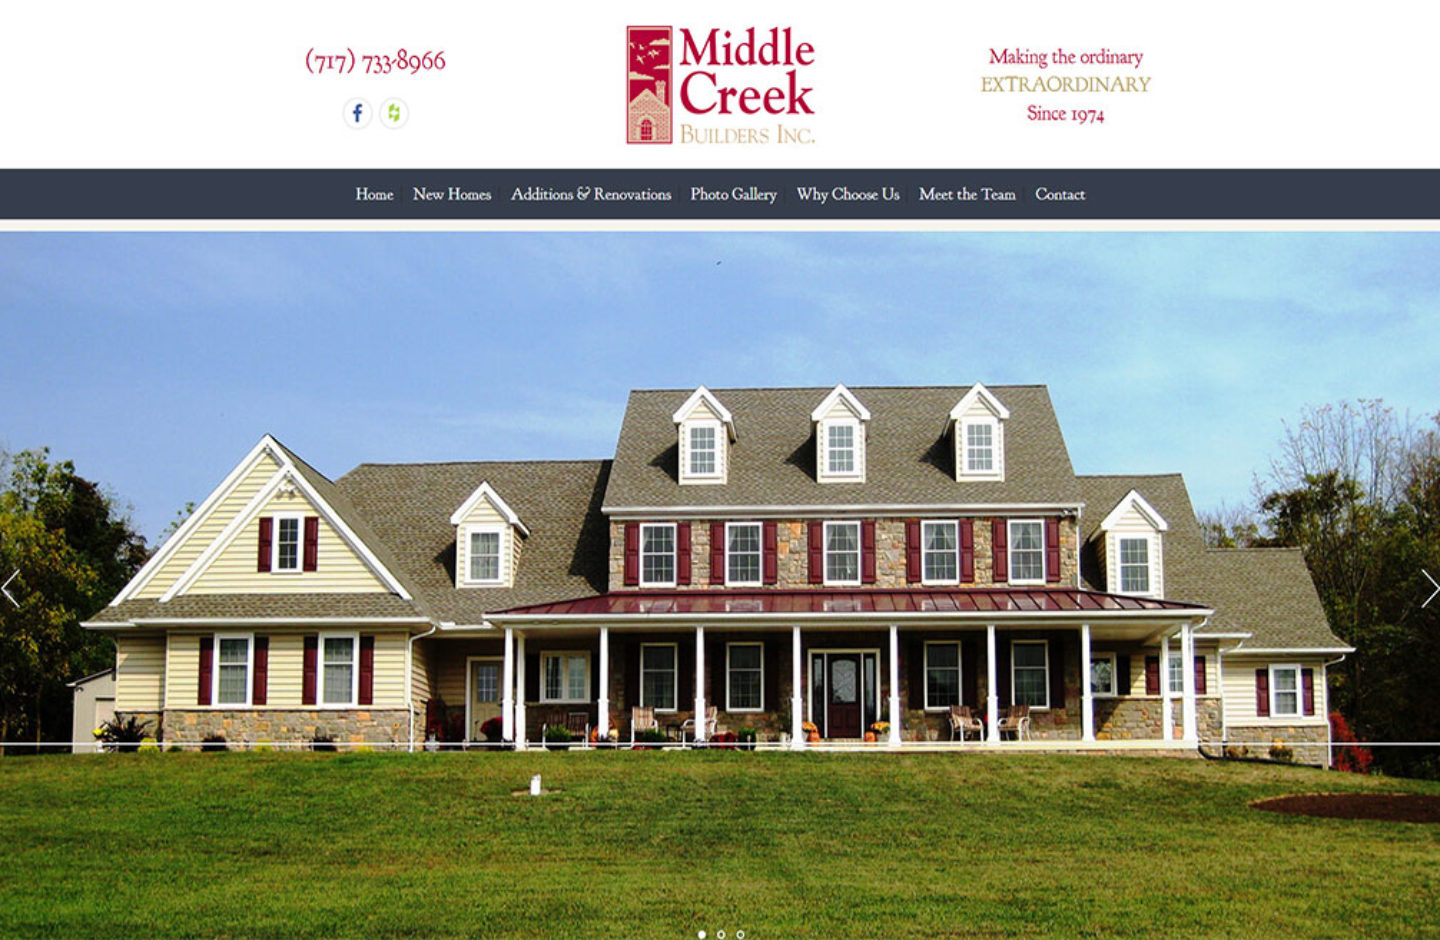 Middle Creek Builders